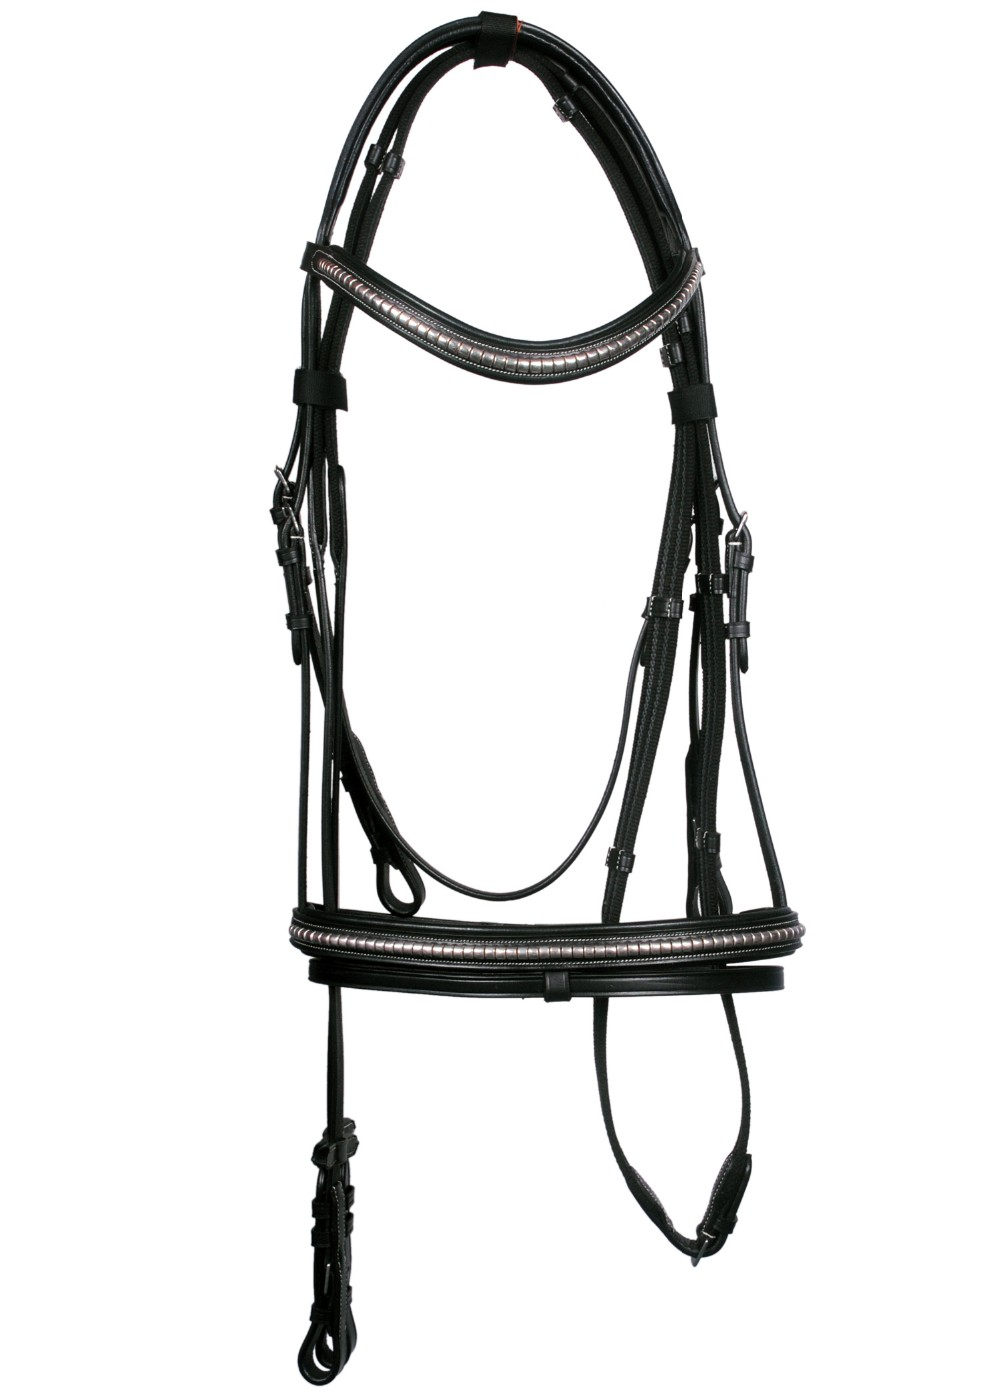 Wholesale Adjustable and Comfortable Rhinestone Decorative Horse Bridle